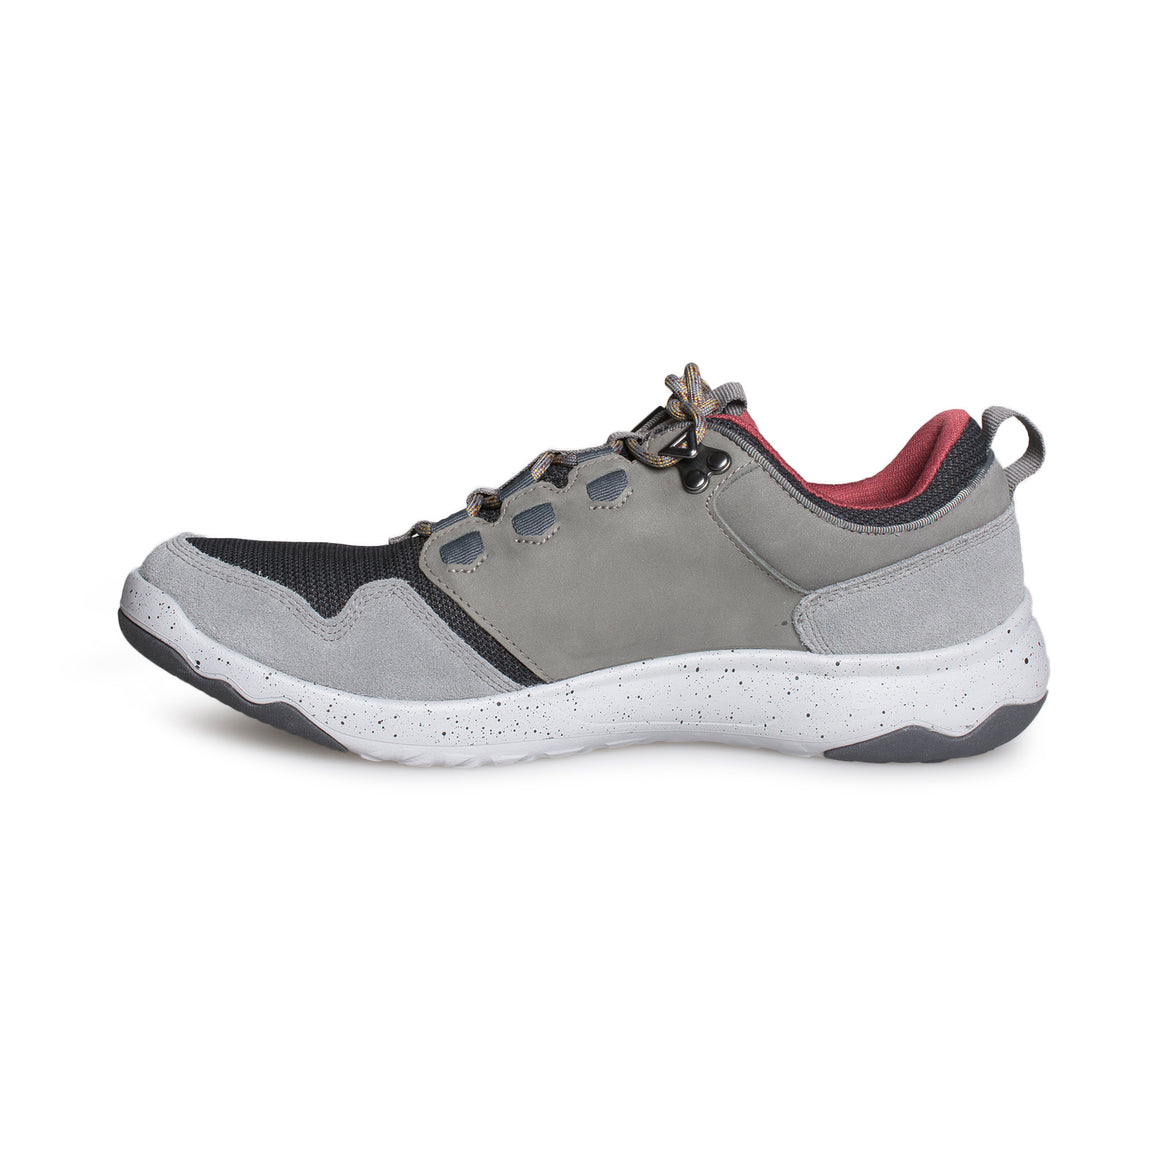 Teva Arrowood WP Grey Shoes - Men's